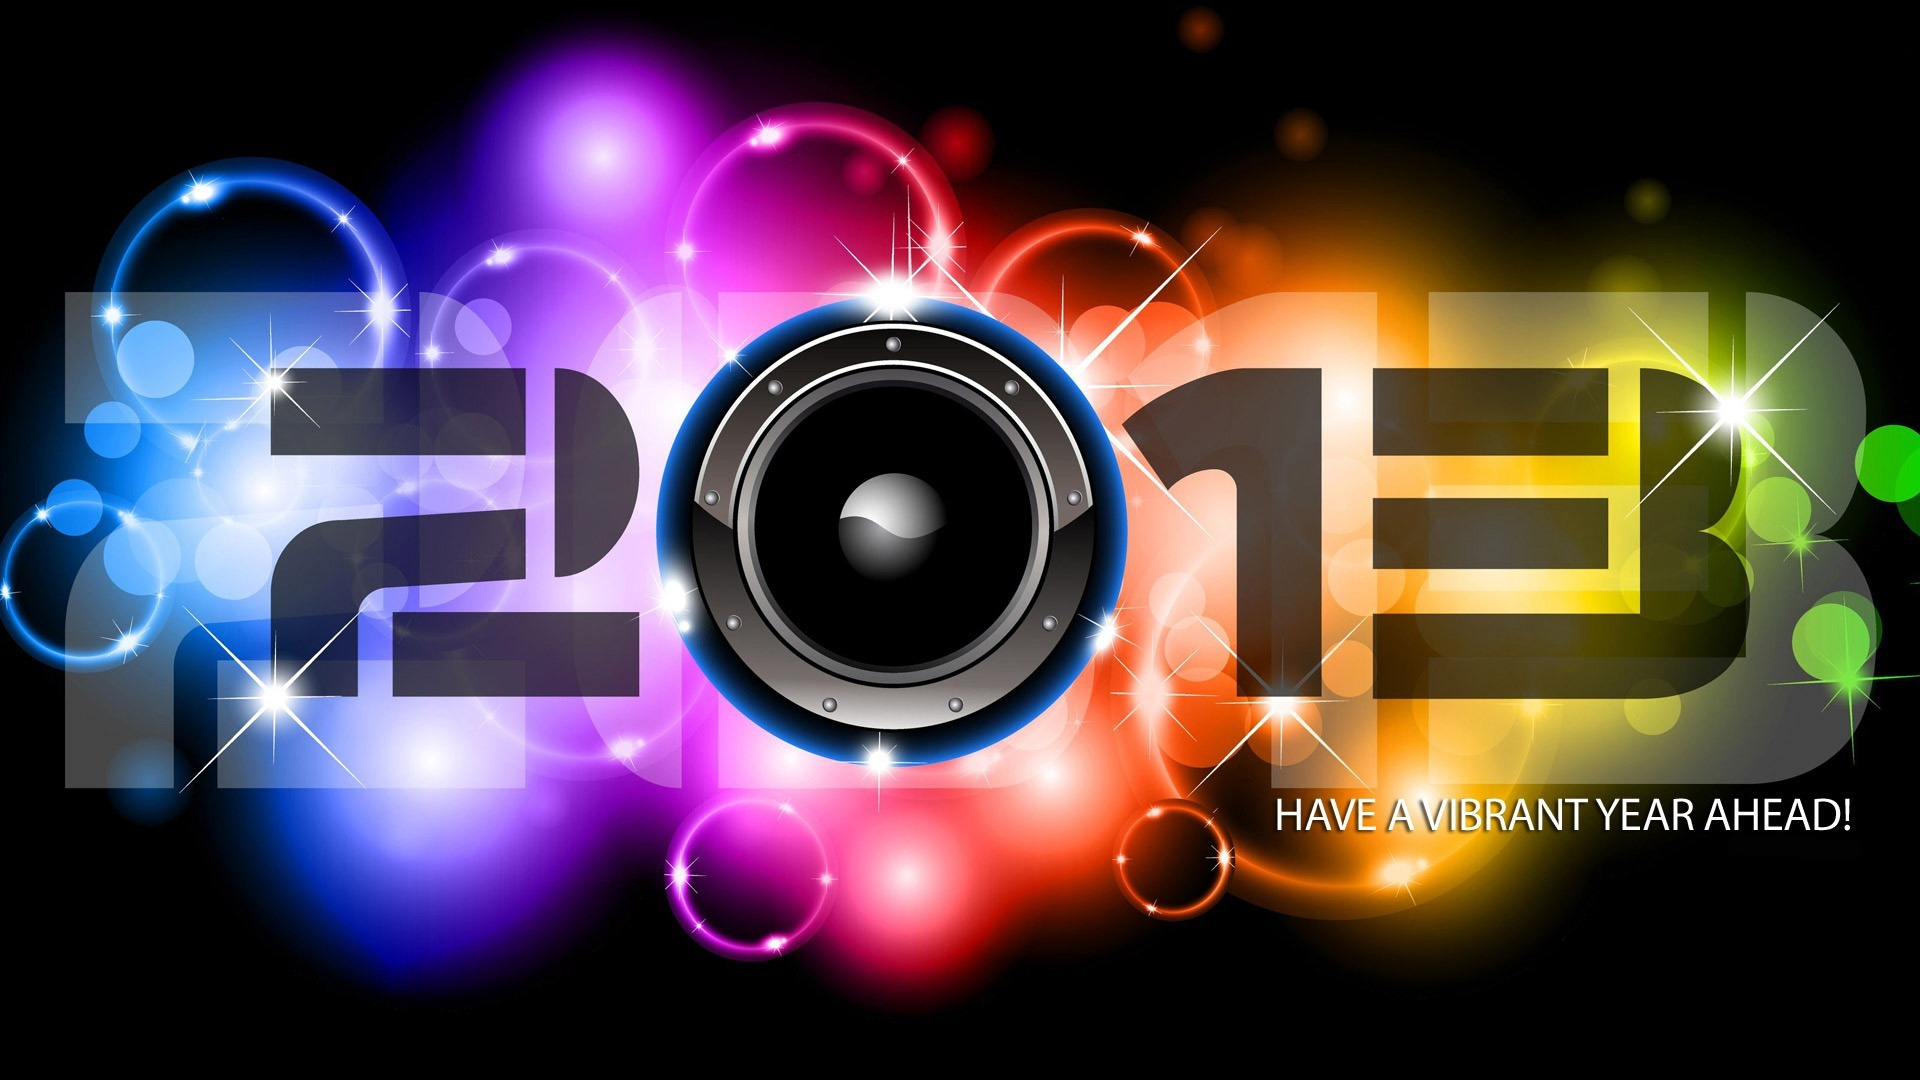 2013-happy-new-year-wallpaper-16